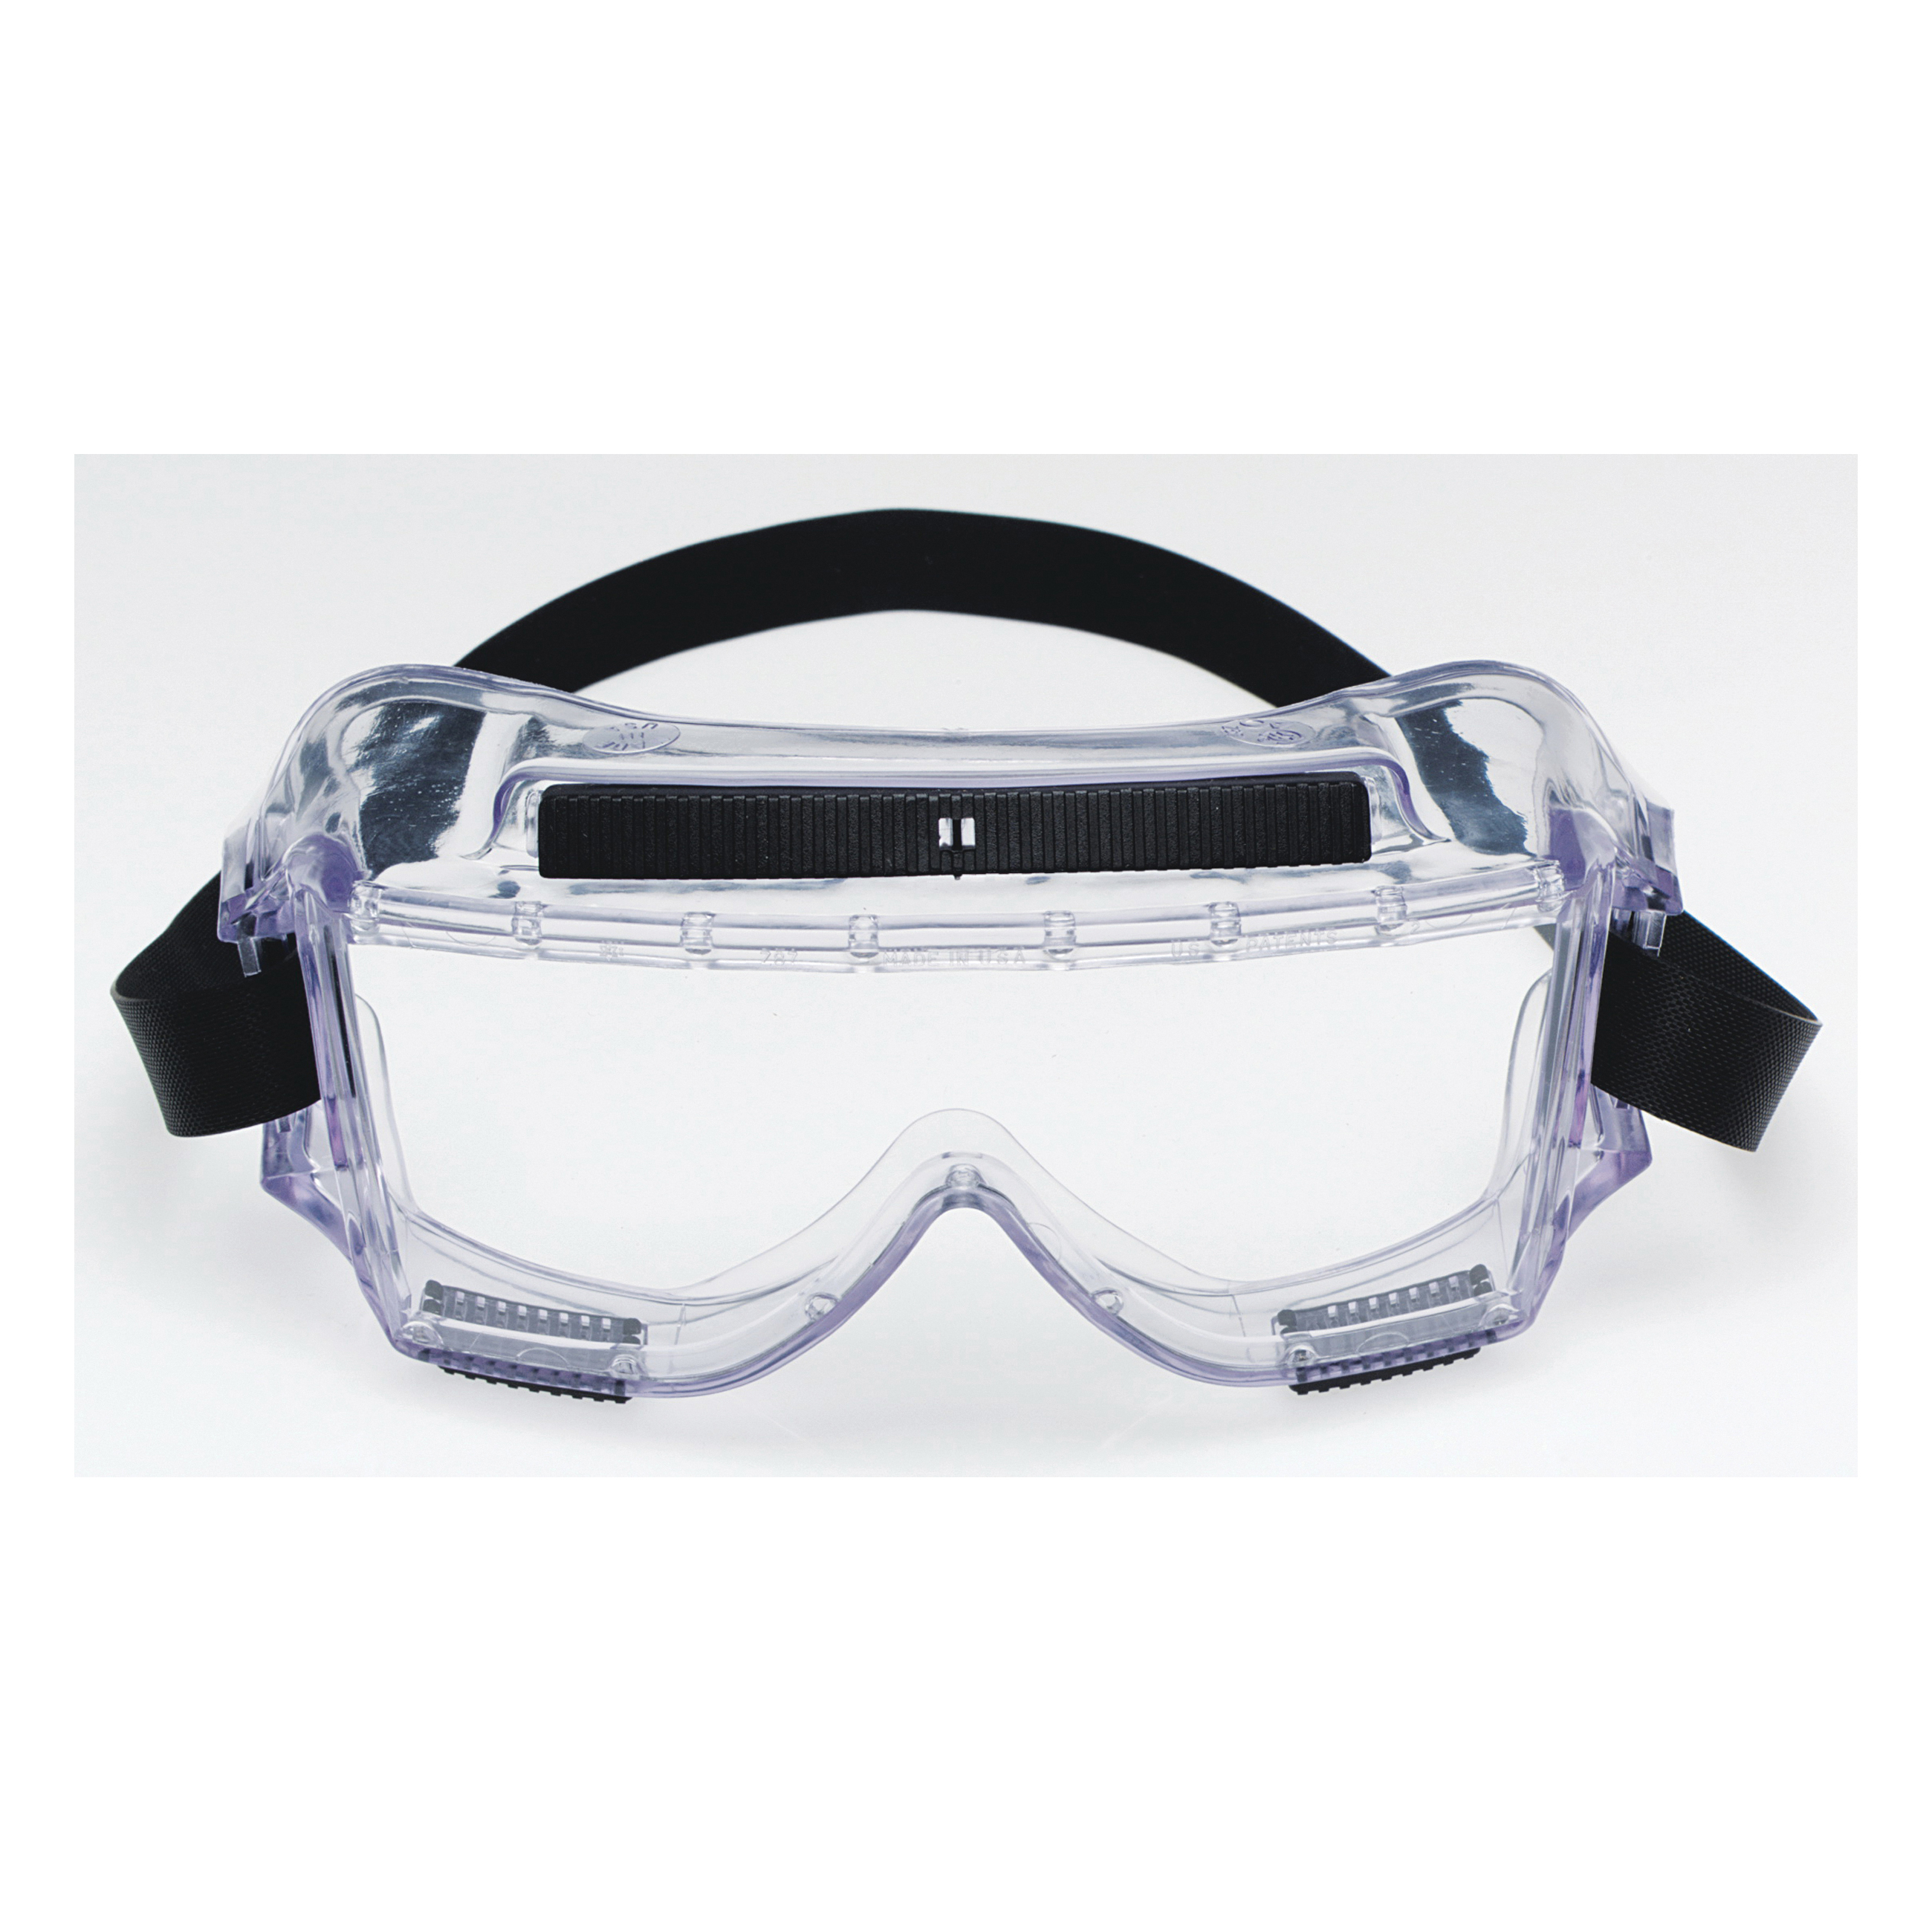 3M™ Centurion™ 078371-62390 Standard Value Safety Goggles, Anti-Fog Clear Polycarbonate Lens, 99.9 % UV Protection, Neoprene Strap, CSA Z94.3-2007, ANSI Z87.1-2003